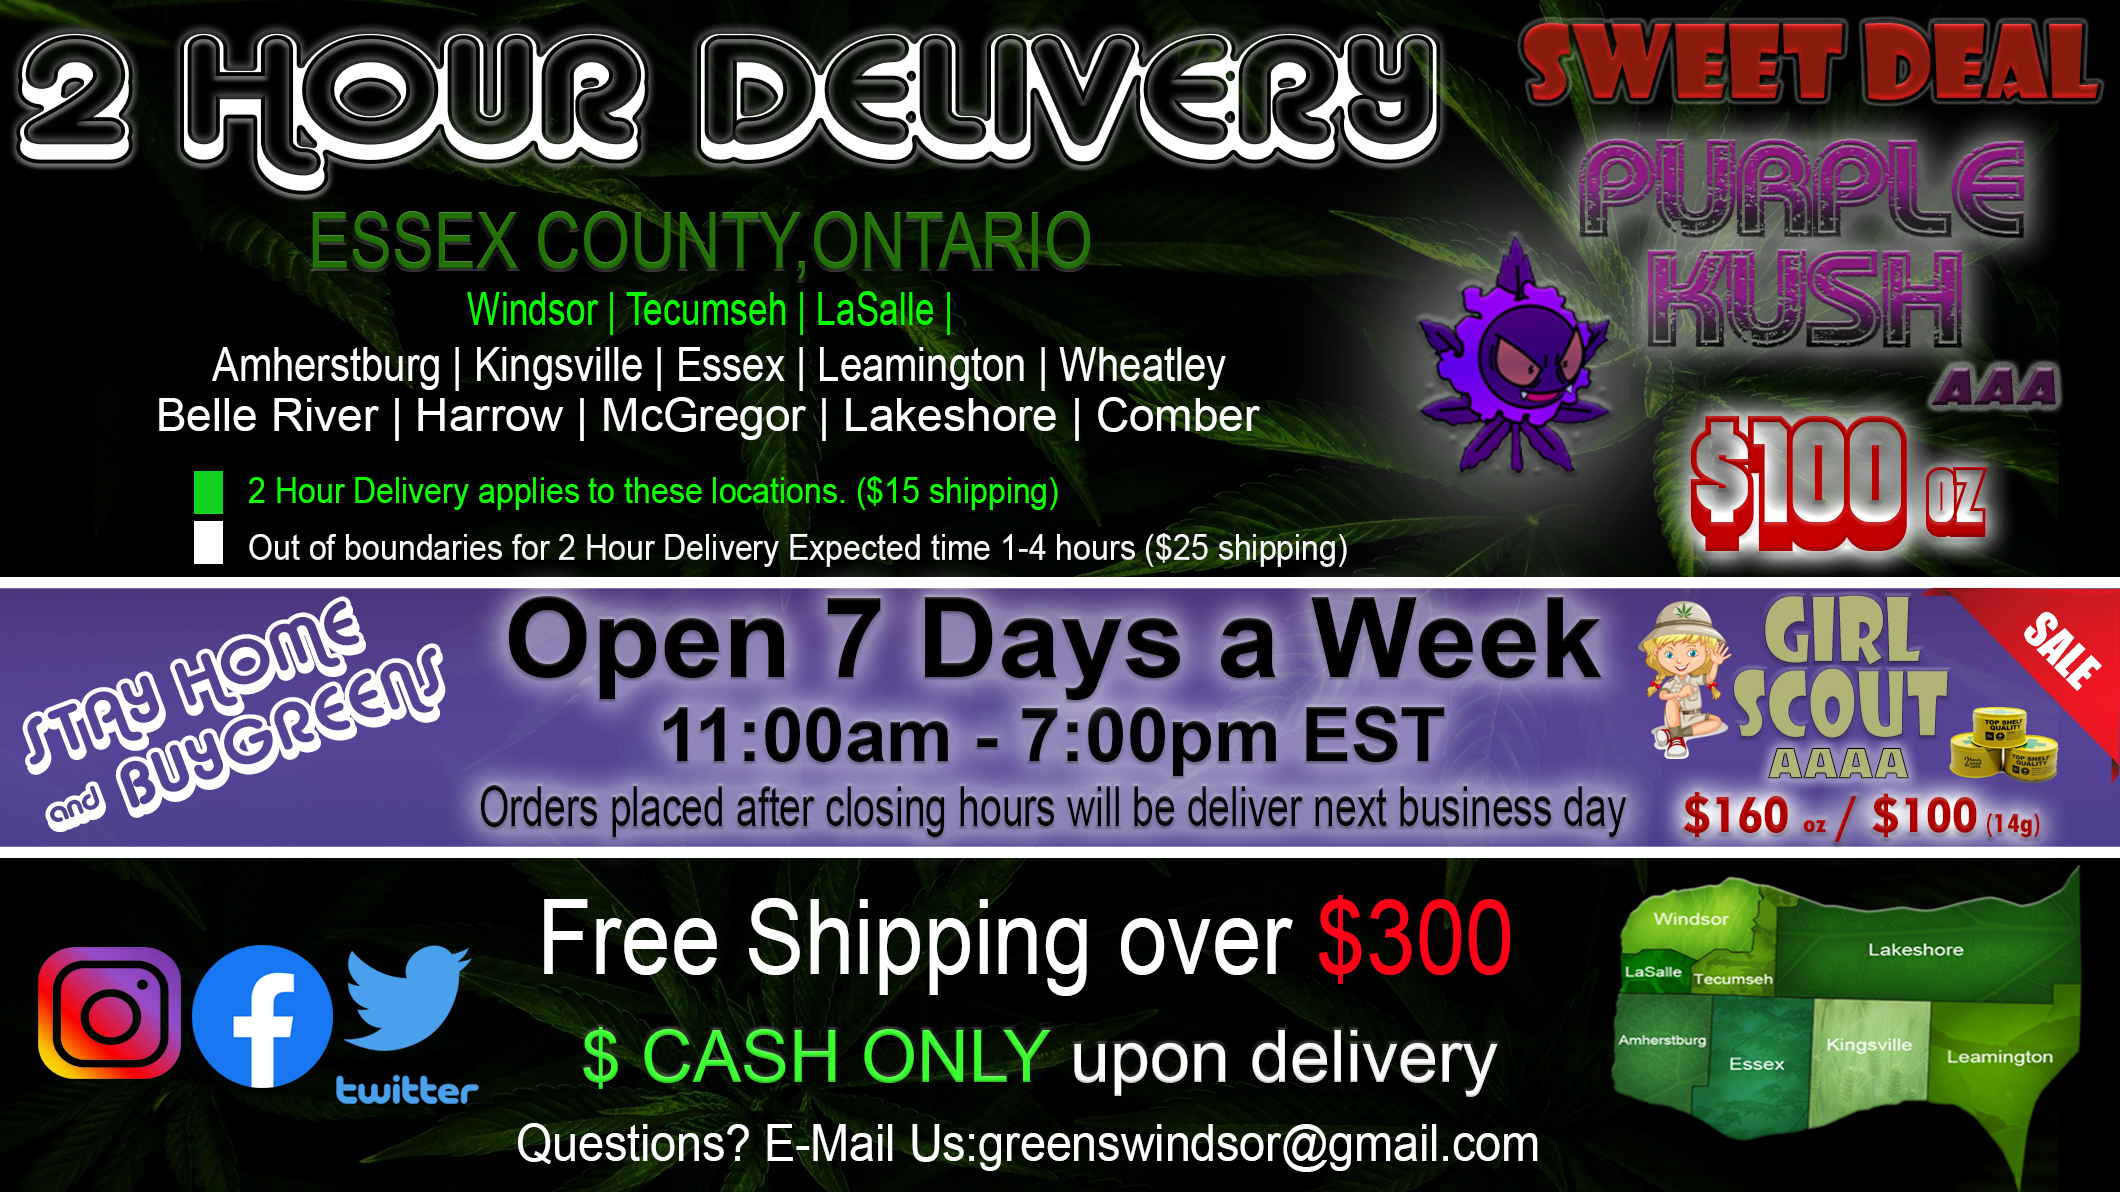 BuyGreens.Online -2 Hour Delivery